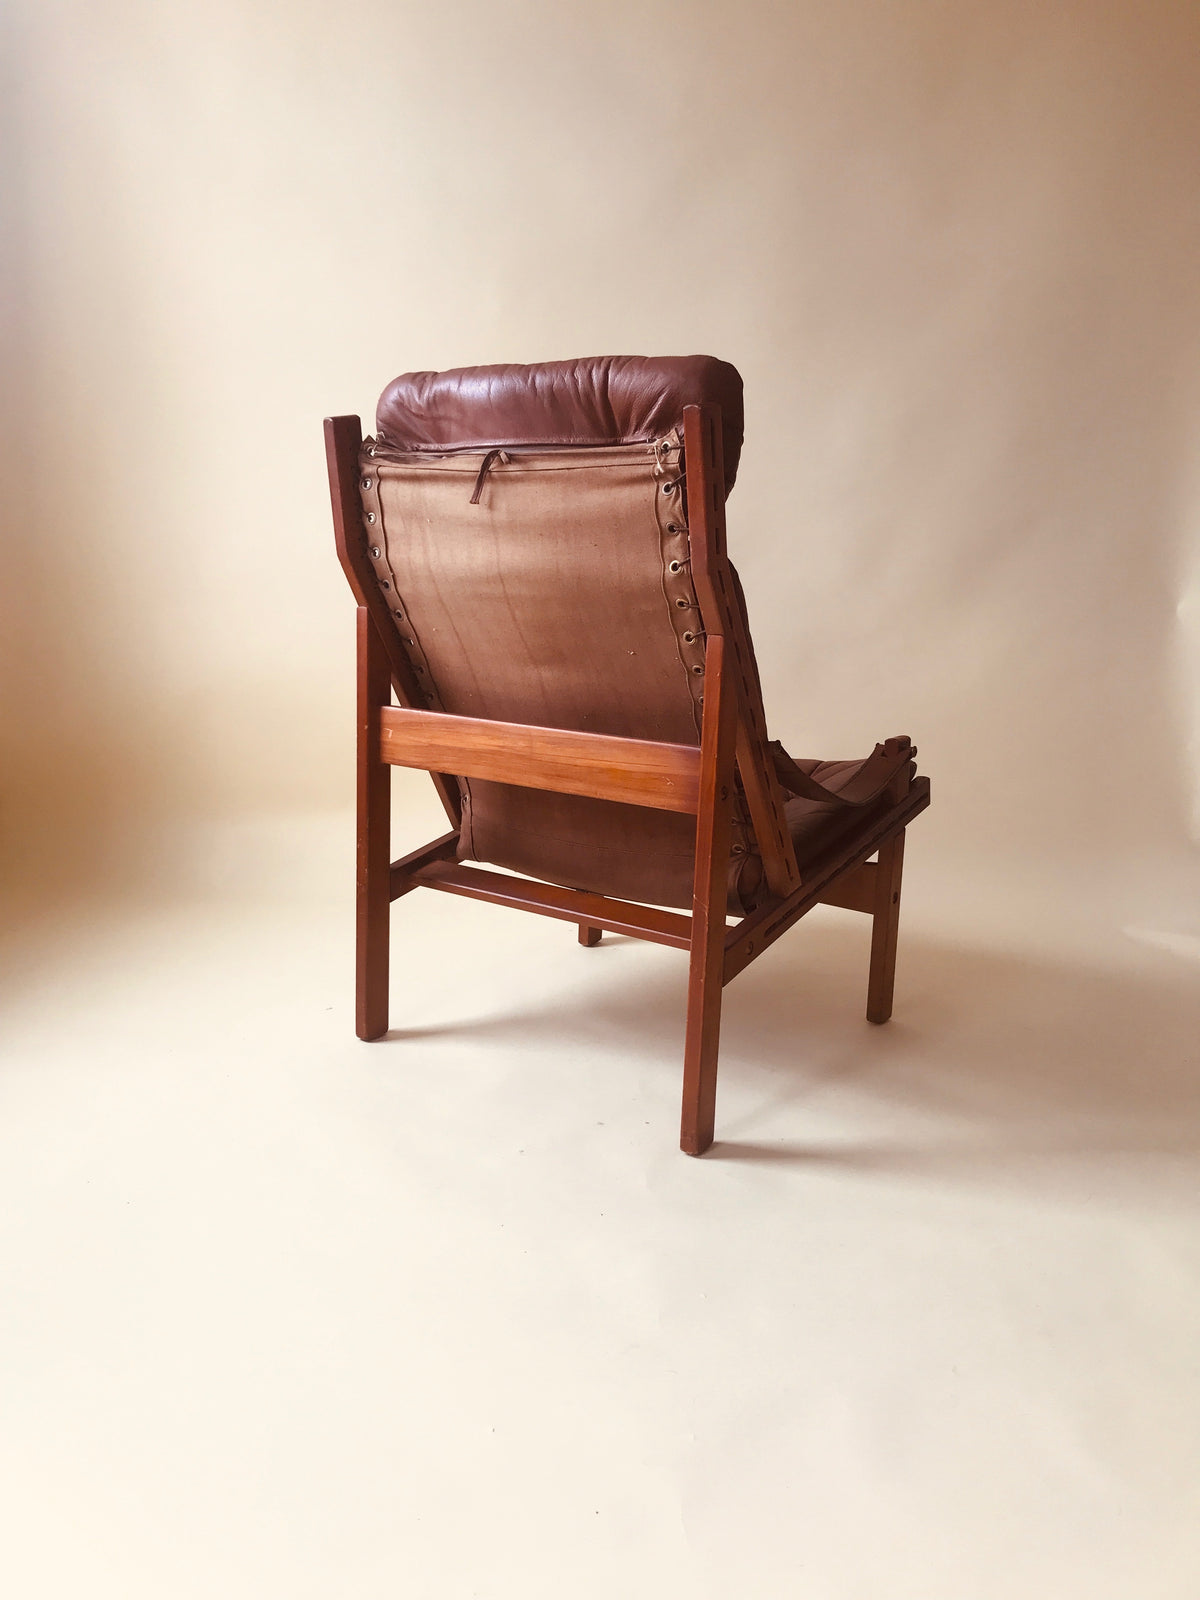 Torbjørn Adalf 'Hunter' Chair